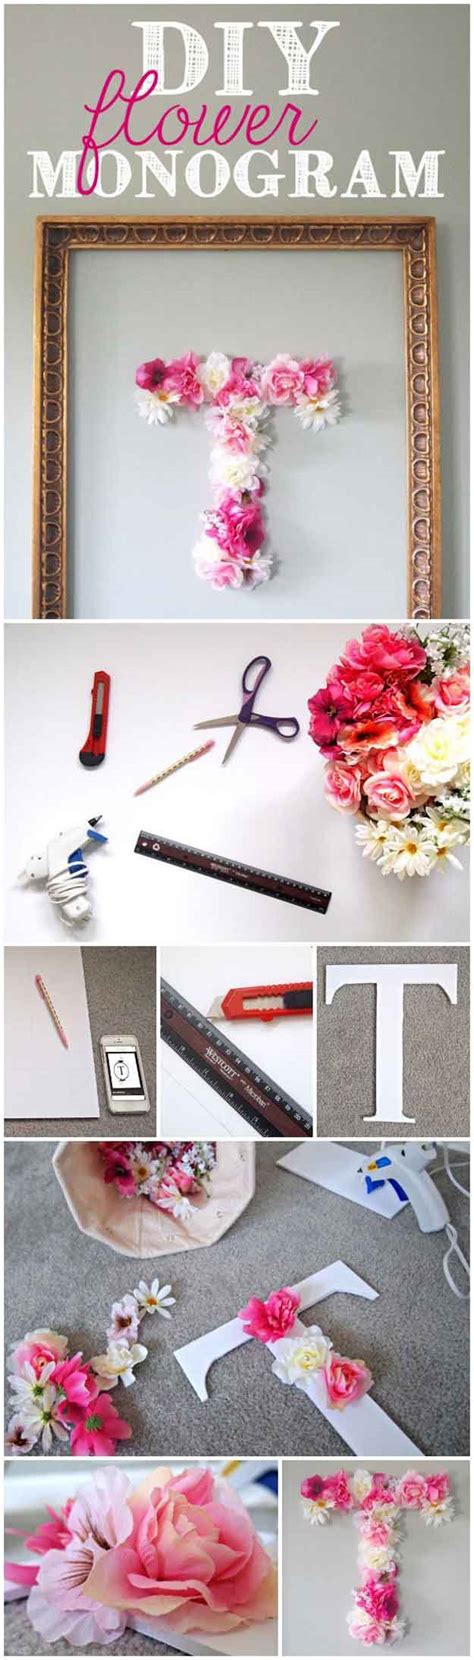 diy craft projects diy projects for bedroom diy ready